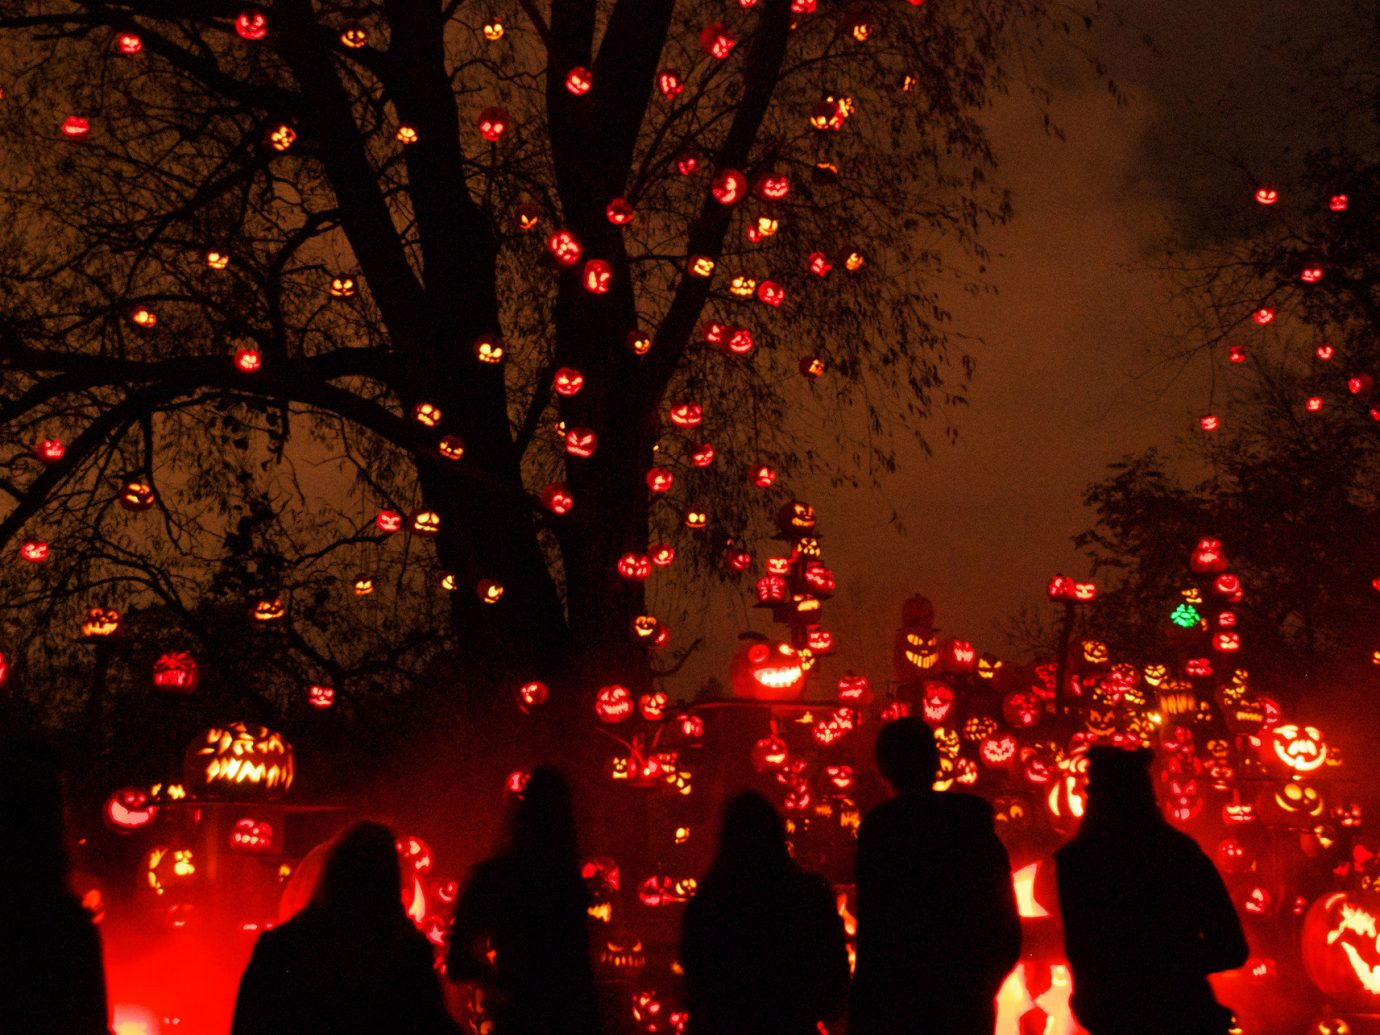 duplicate festive glow halloween holiday lights night night lights orange Outdoors pumpkins silhouette trees Trip Ideas outdoor christmas lights Christmas light christmas decoration darkness event bunch